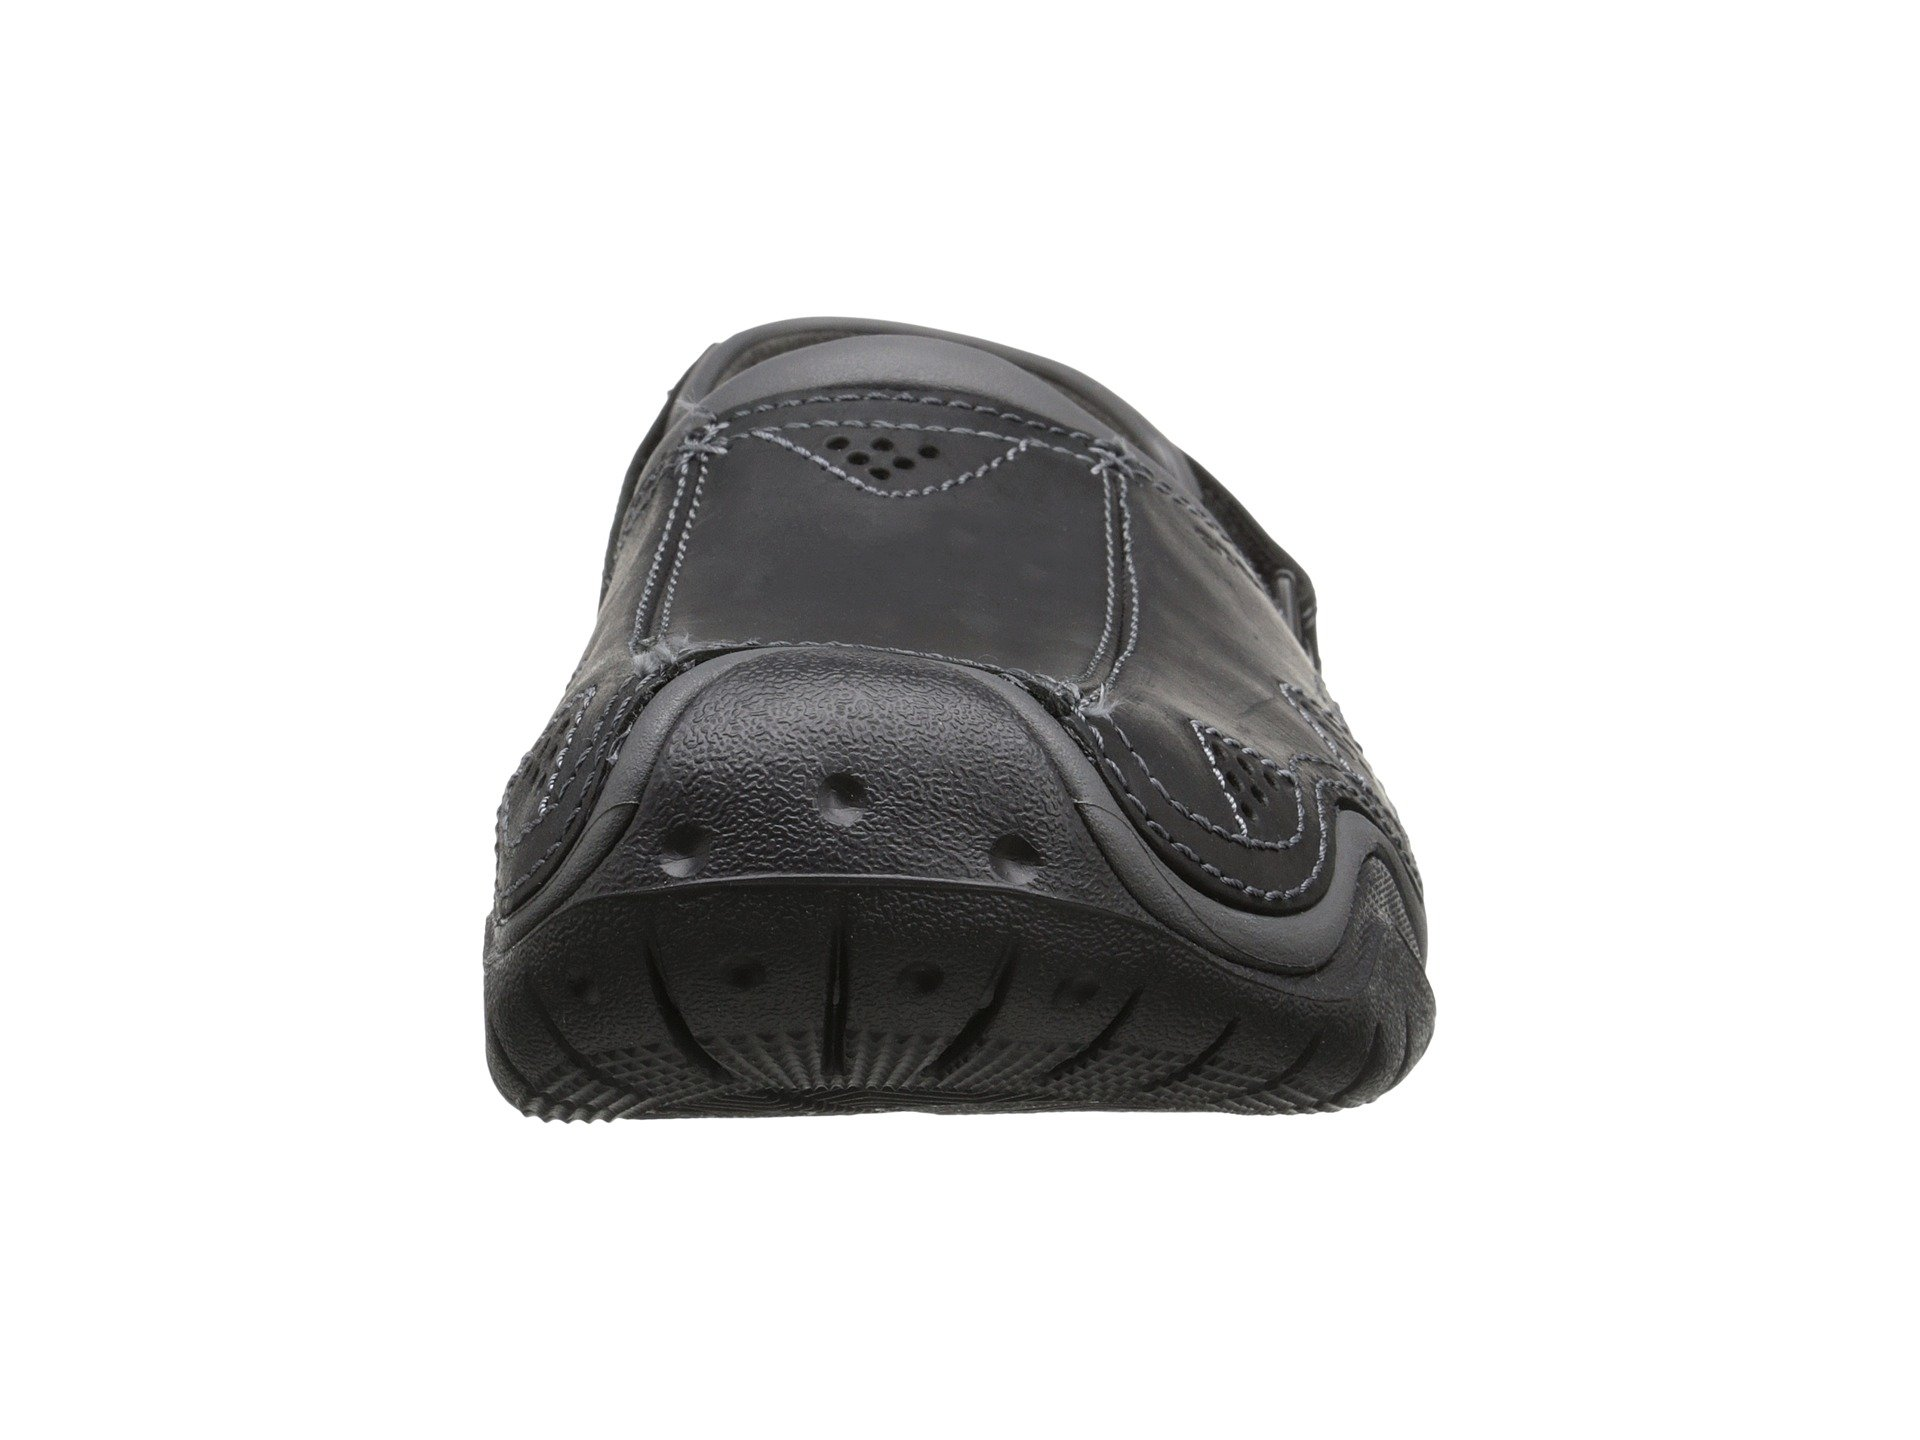 black singles in swiftwater Find great prices on crocs black women's swiftwater mesh sandals shoes and other womens sandals weight of footwear is based on a single item- not a pair read.